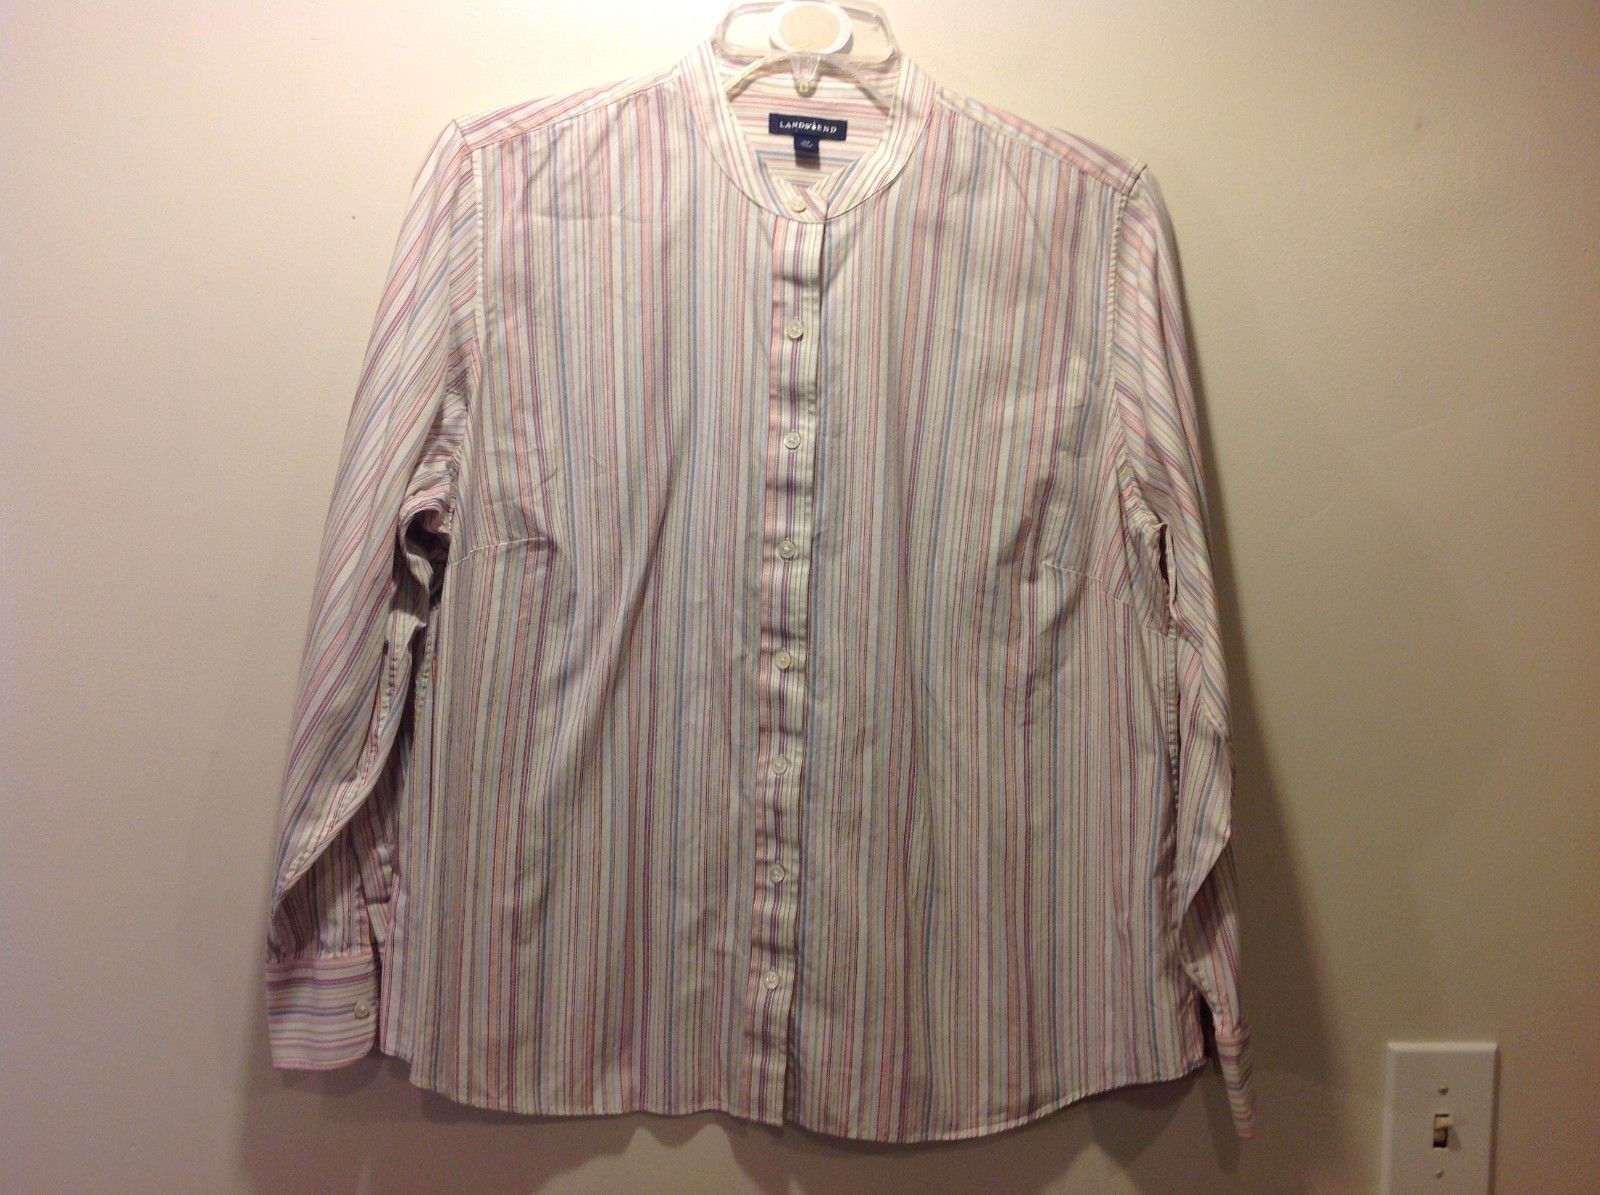 Great Used Condition Land's End 20W Multicolor Vertical Striped Button Up